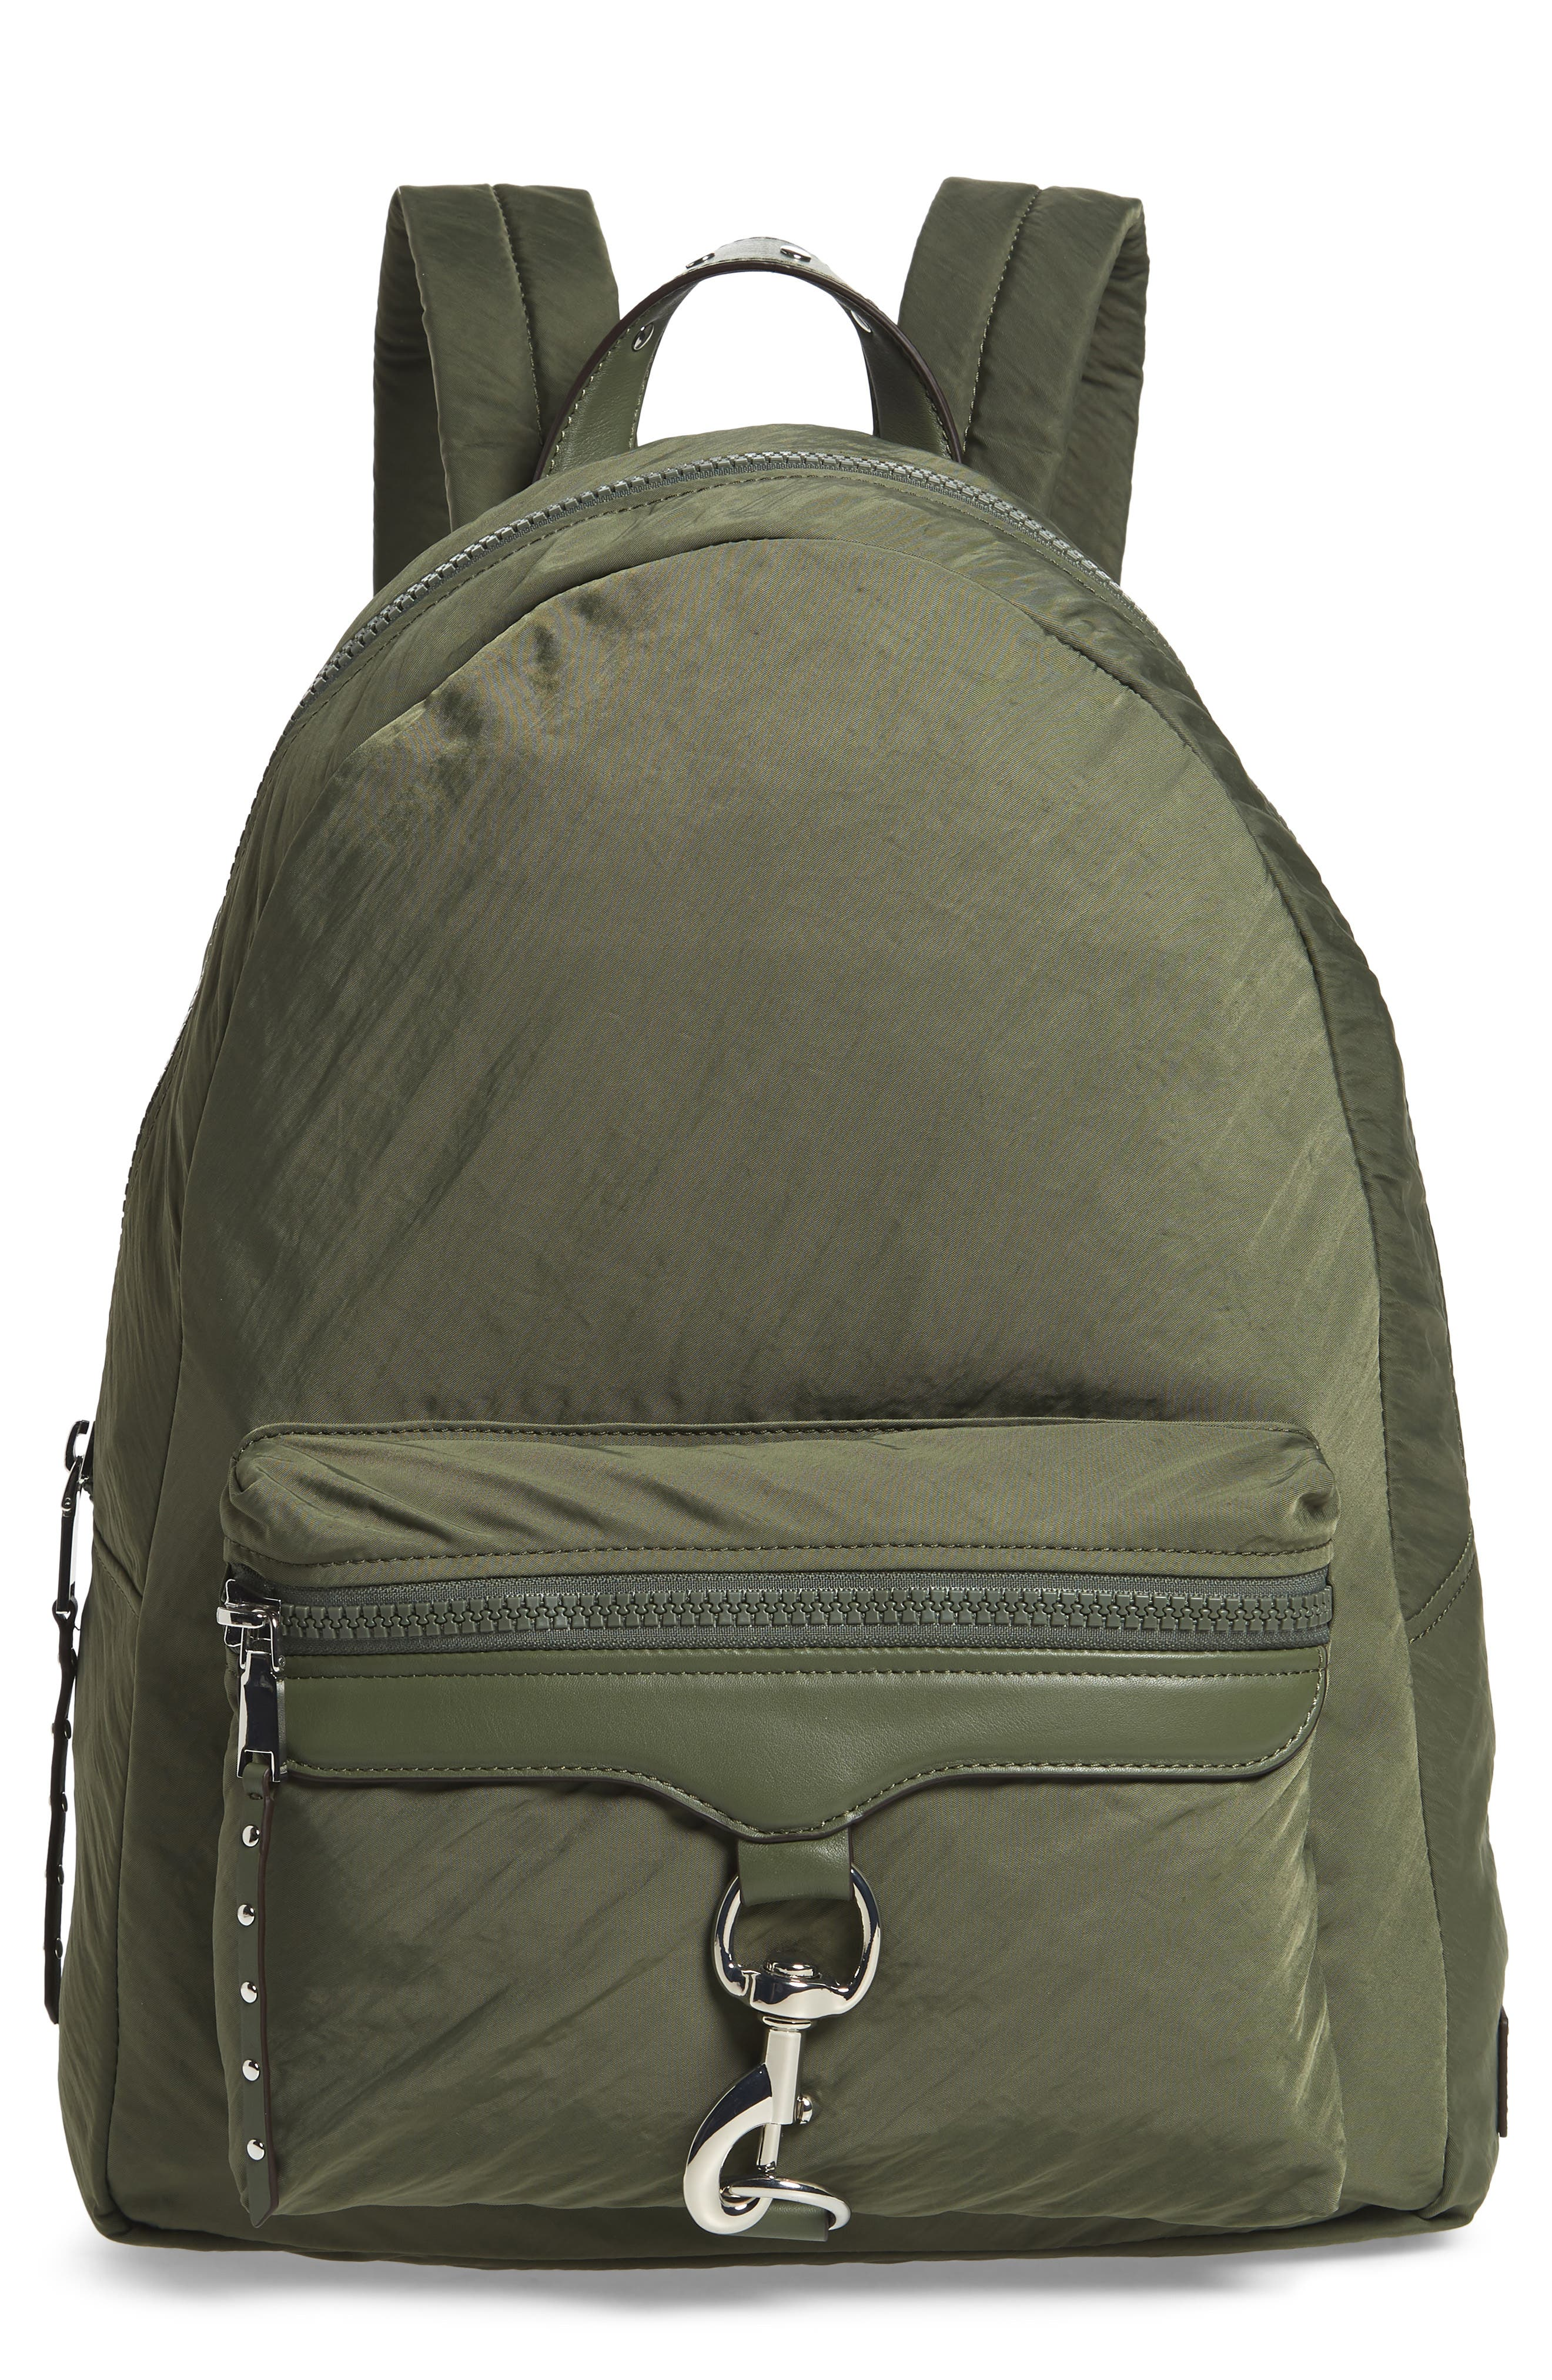 Always On MAB Backpack,                             Main thumbnail 1, color,                             Olive